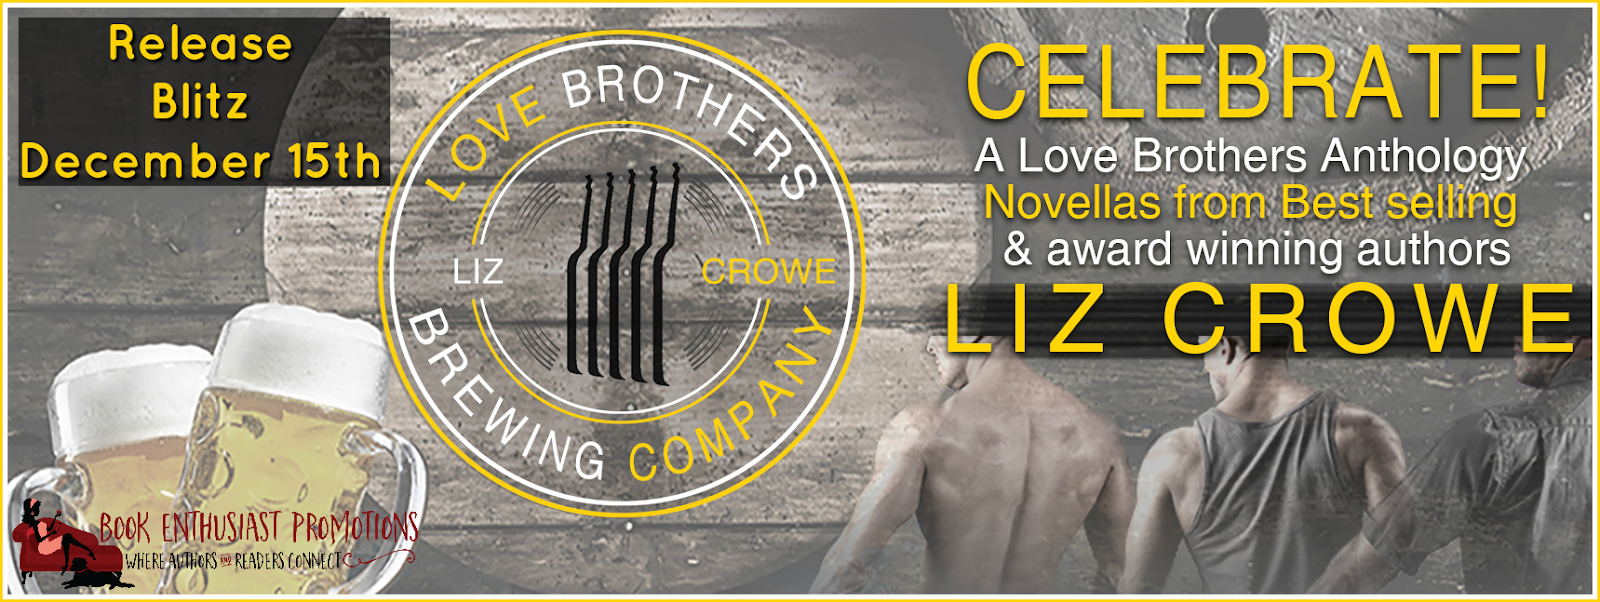 Release Blitz Banner.png